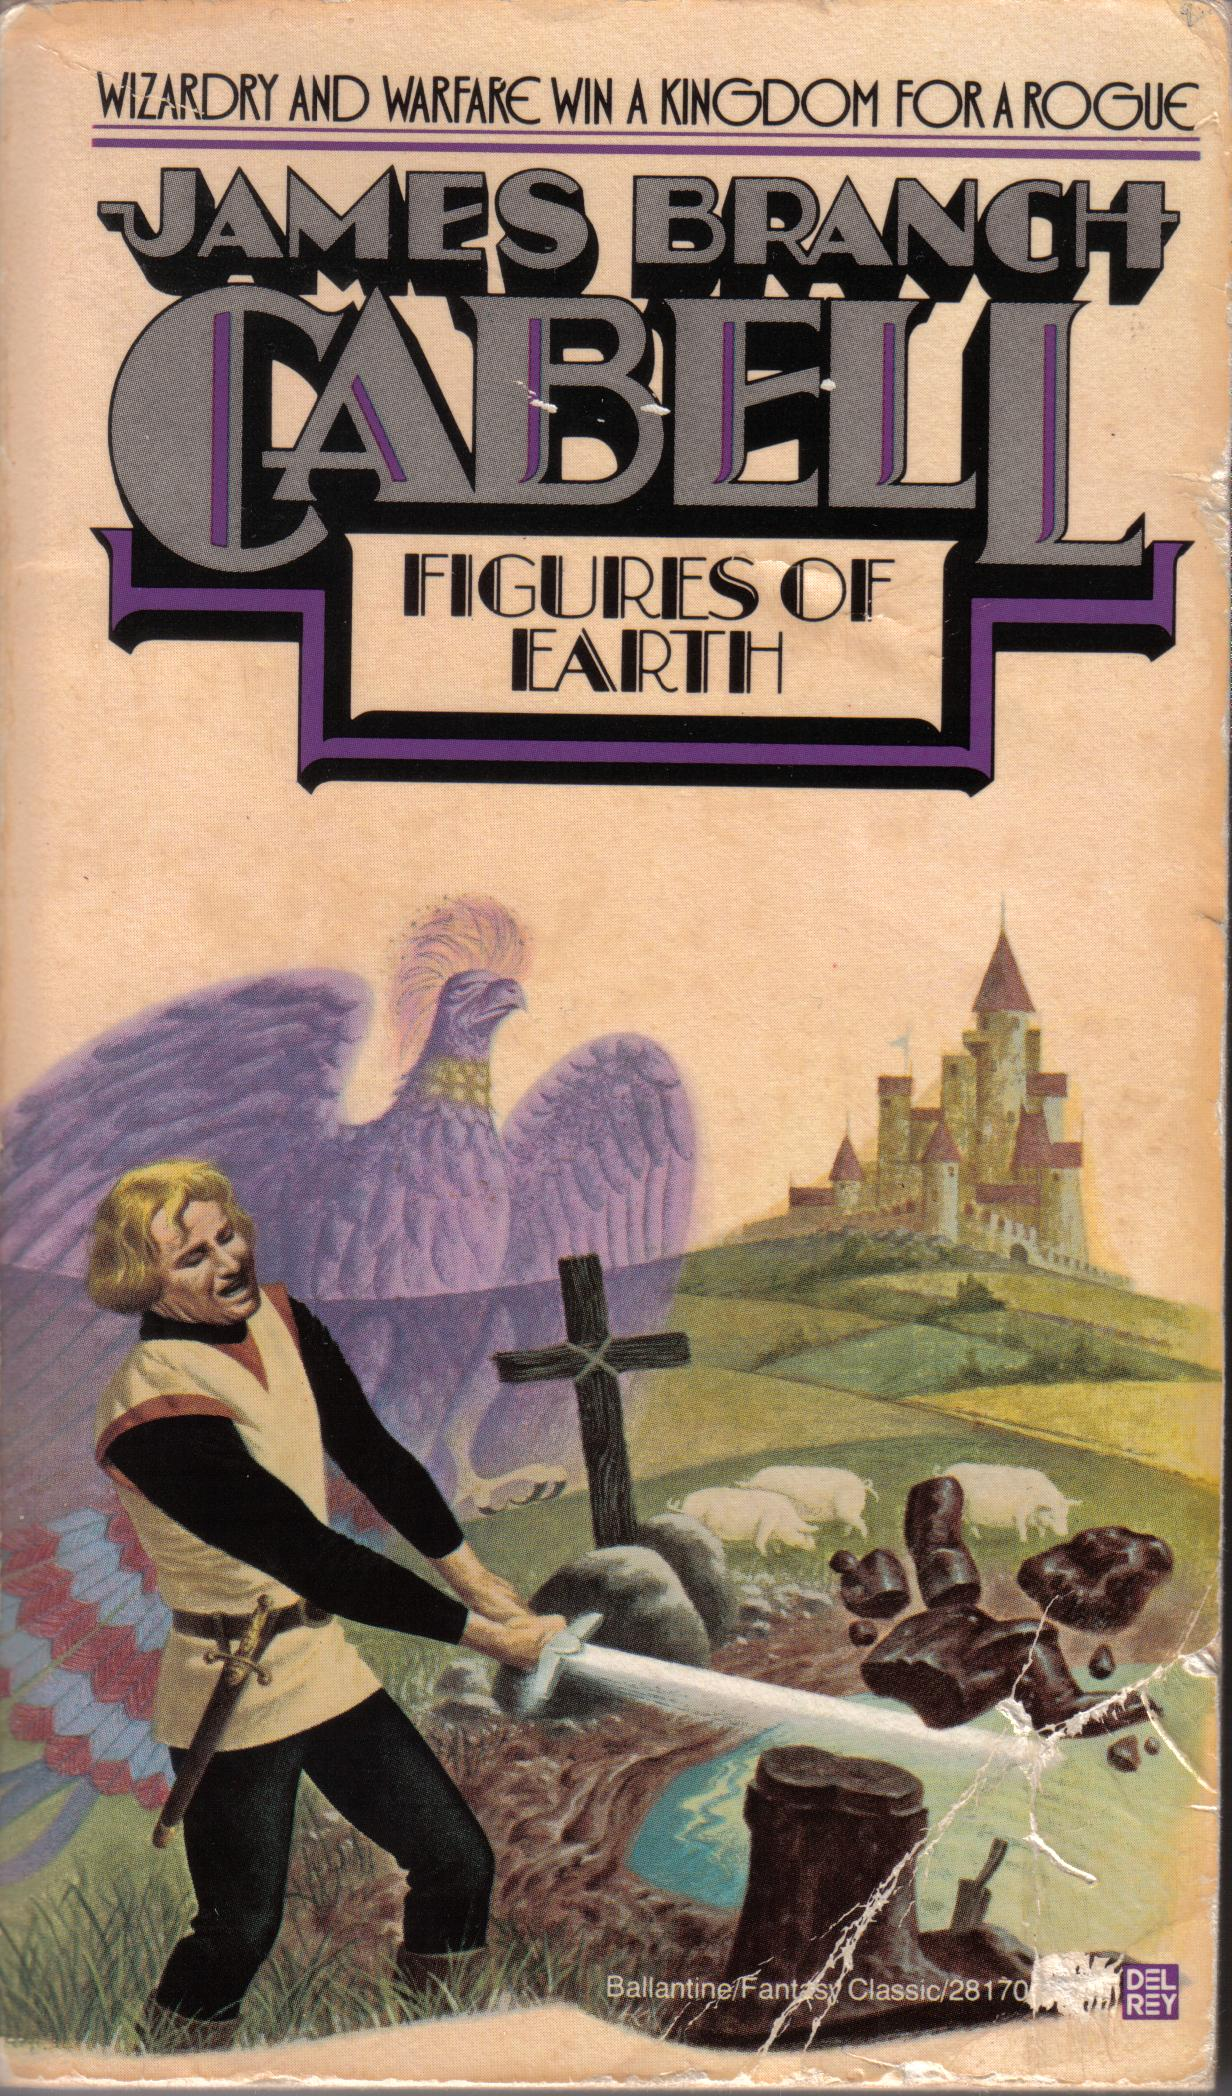 https://www.blackgate.com/wp-content/uploads/2015/02/Figures-of-Earth-1979-edition.jpg